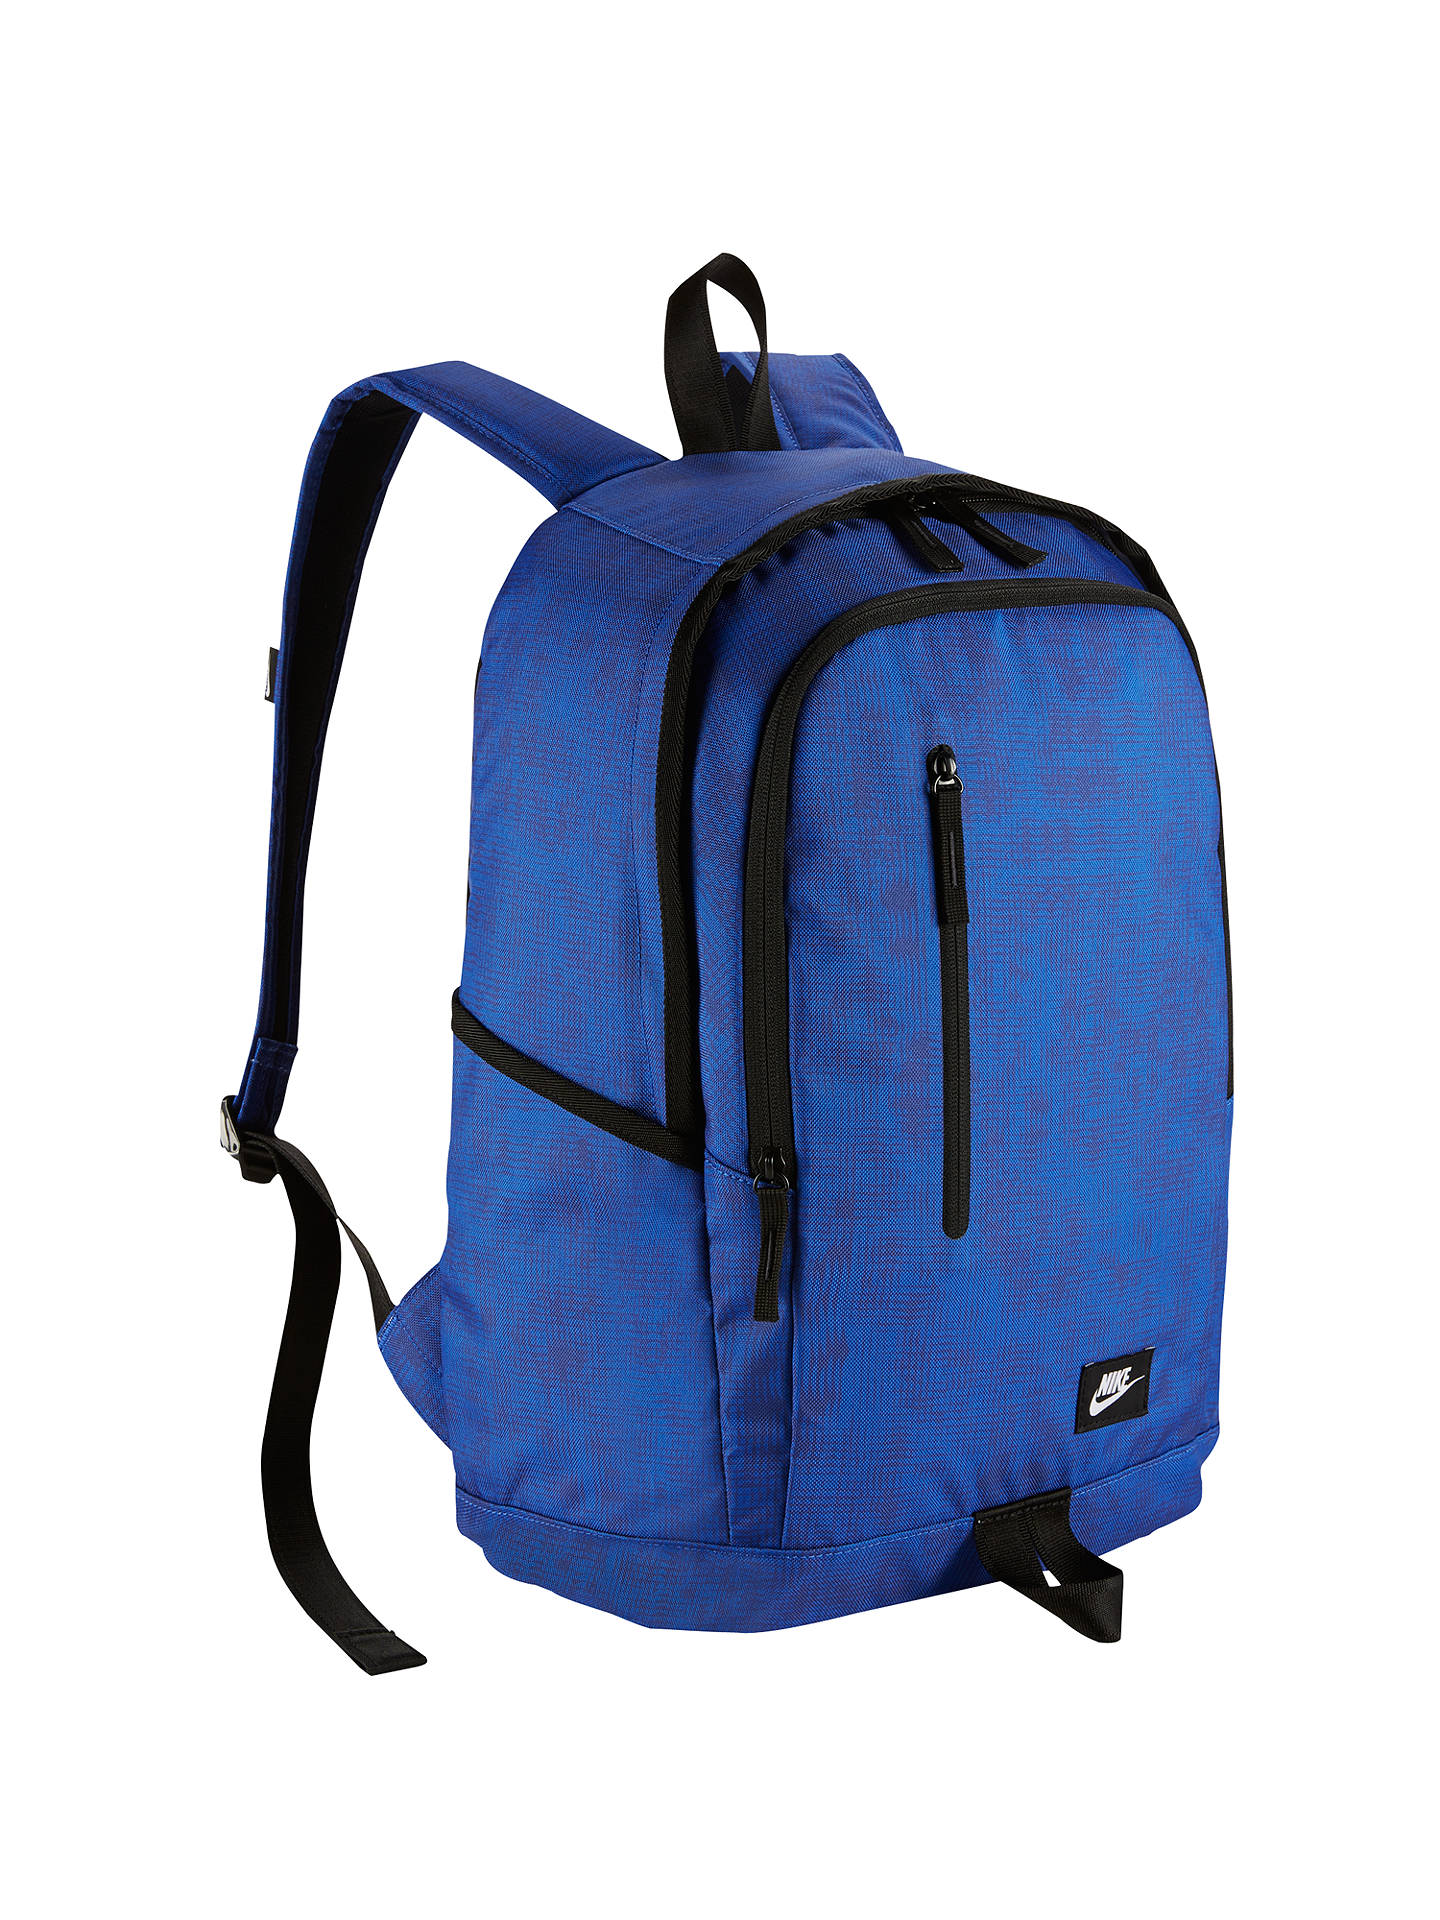 706f3ccbb5 BuyNike All Access Soleday Backpack